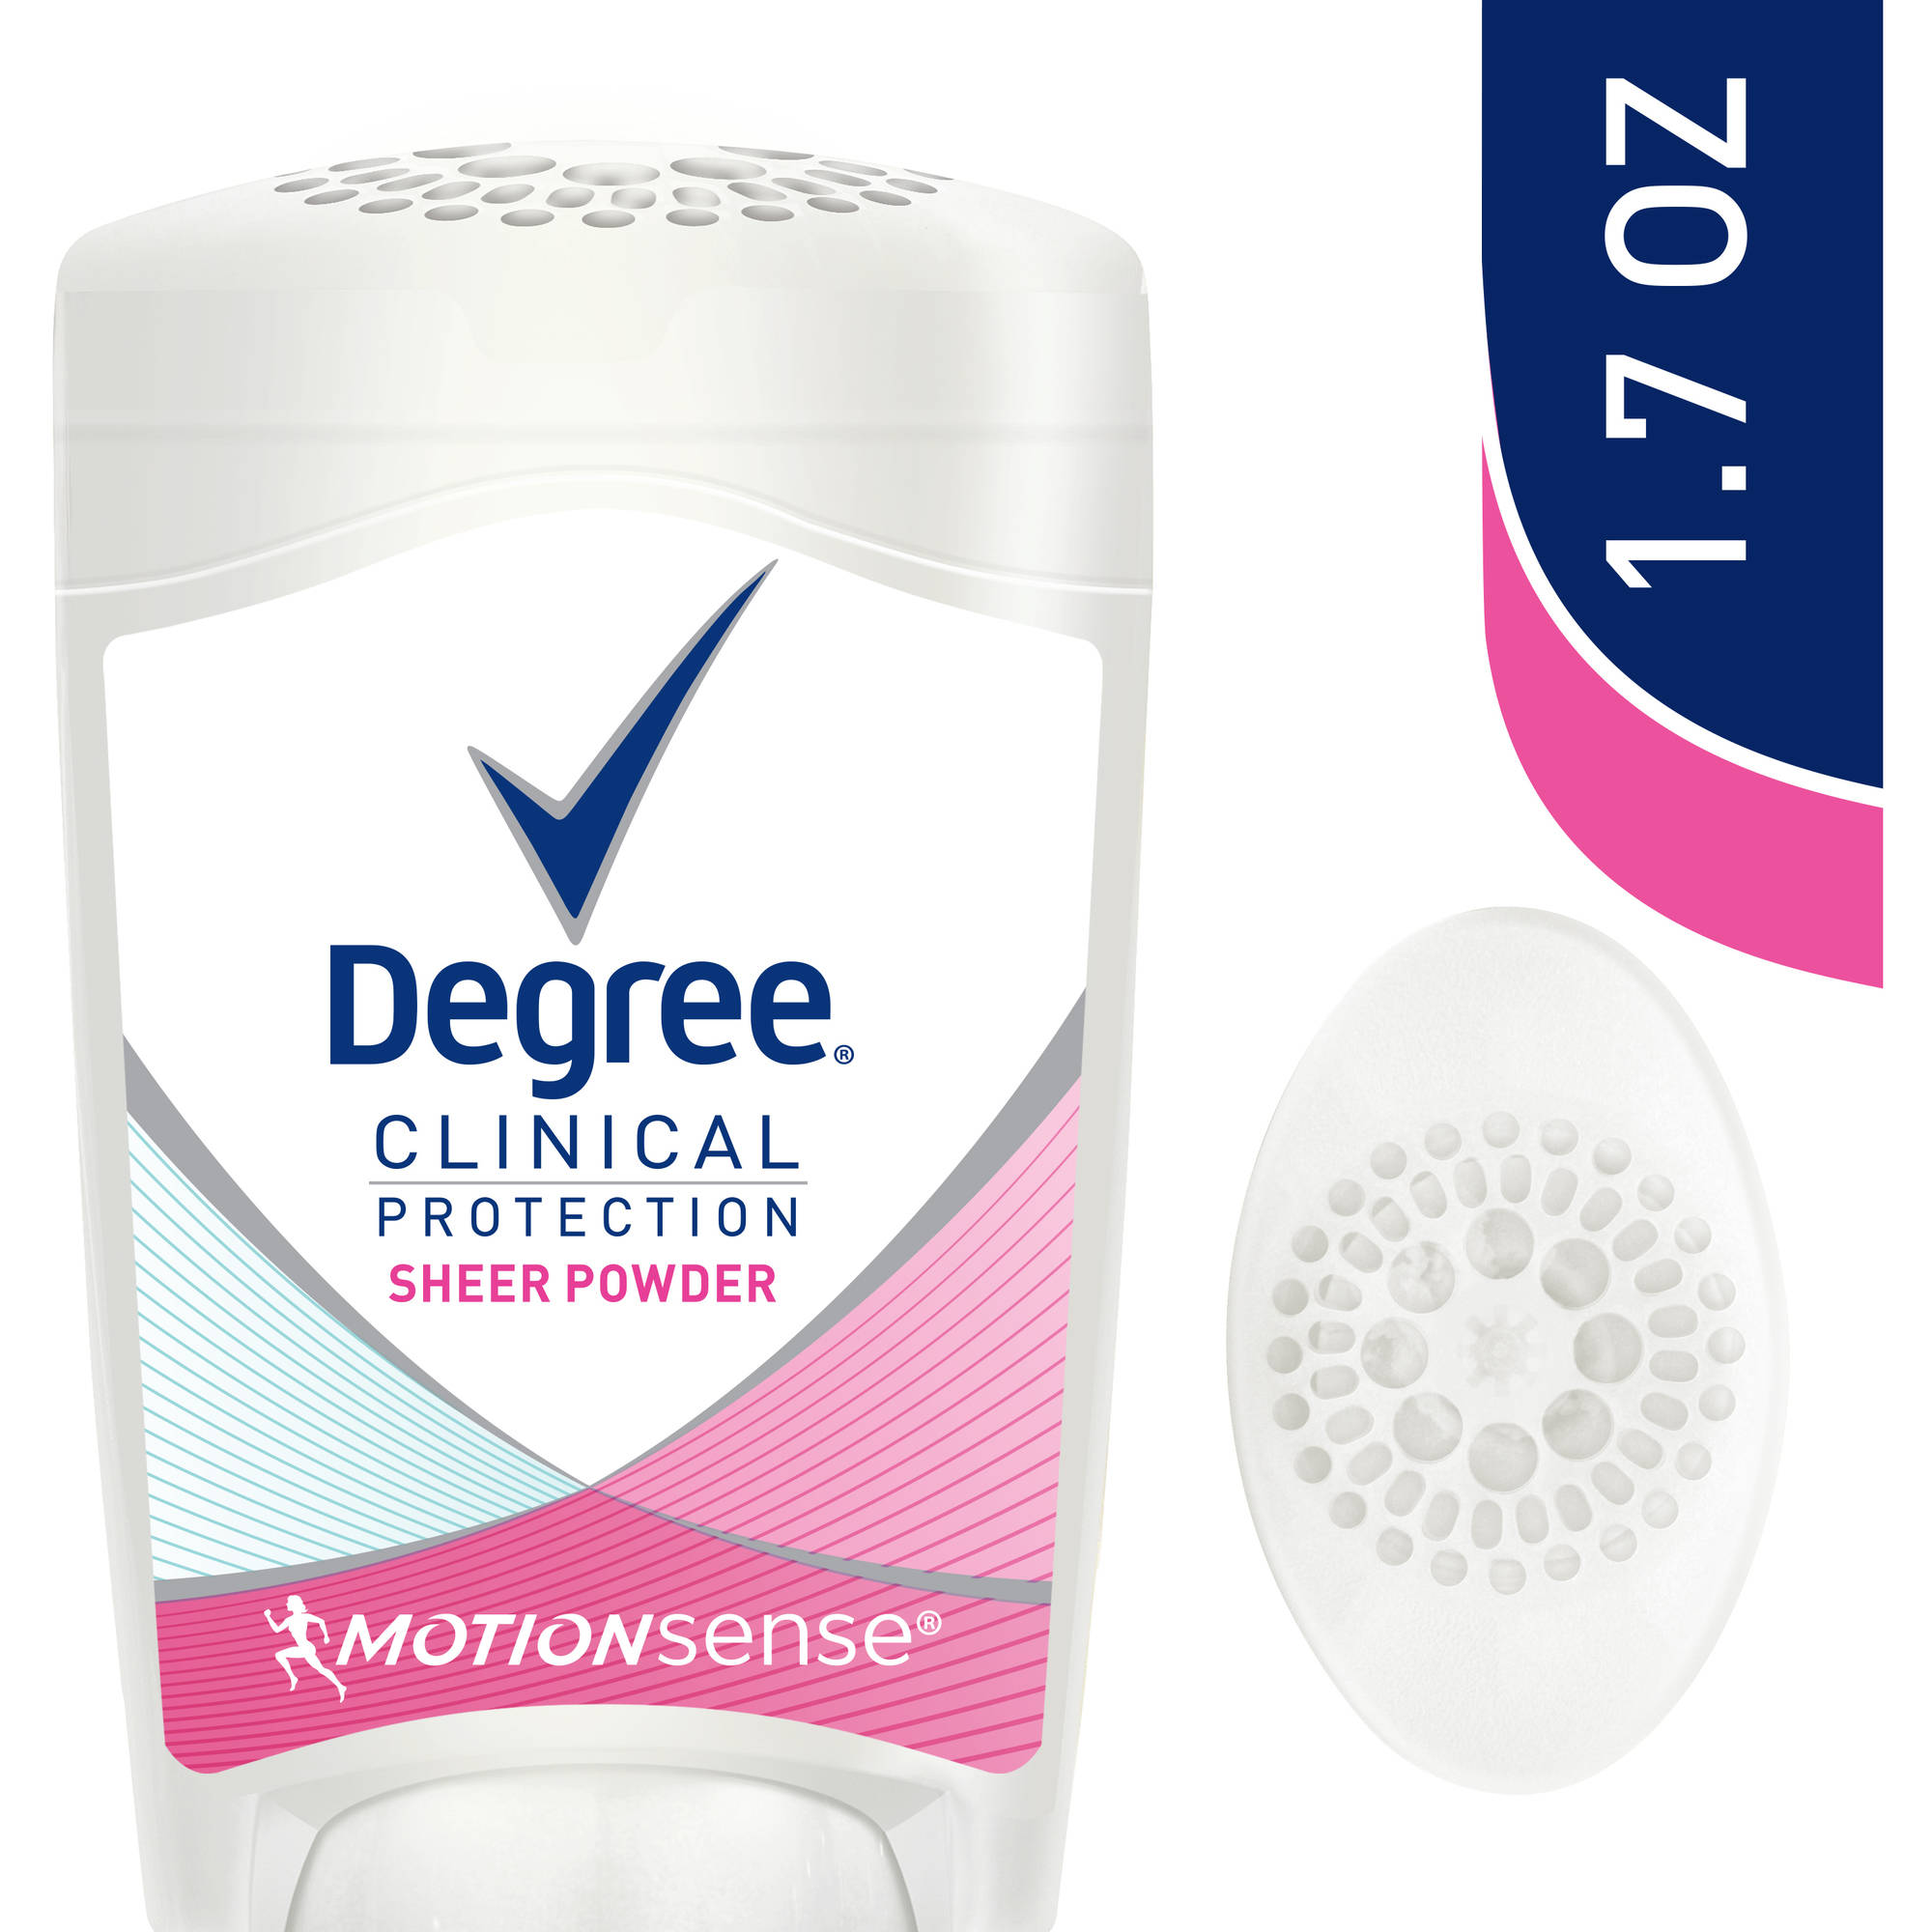 Degree Clinical Protection Sheer Powder Anti-Perspirant & Deodorant, 1.7 oz